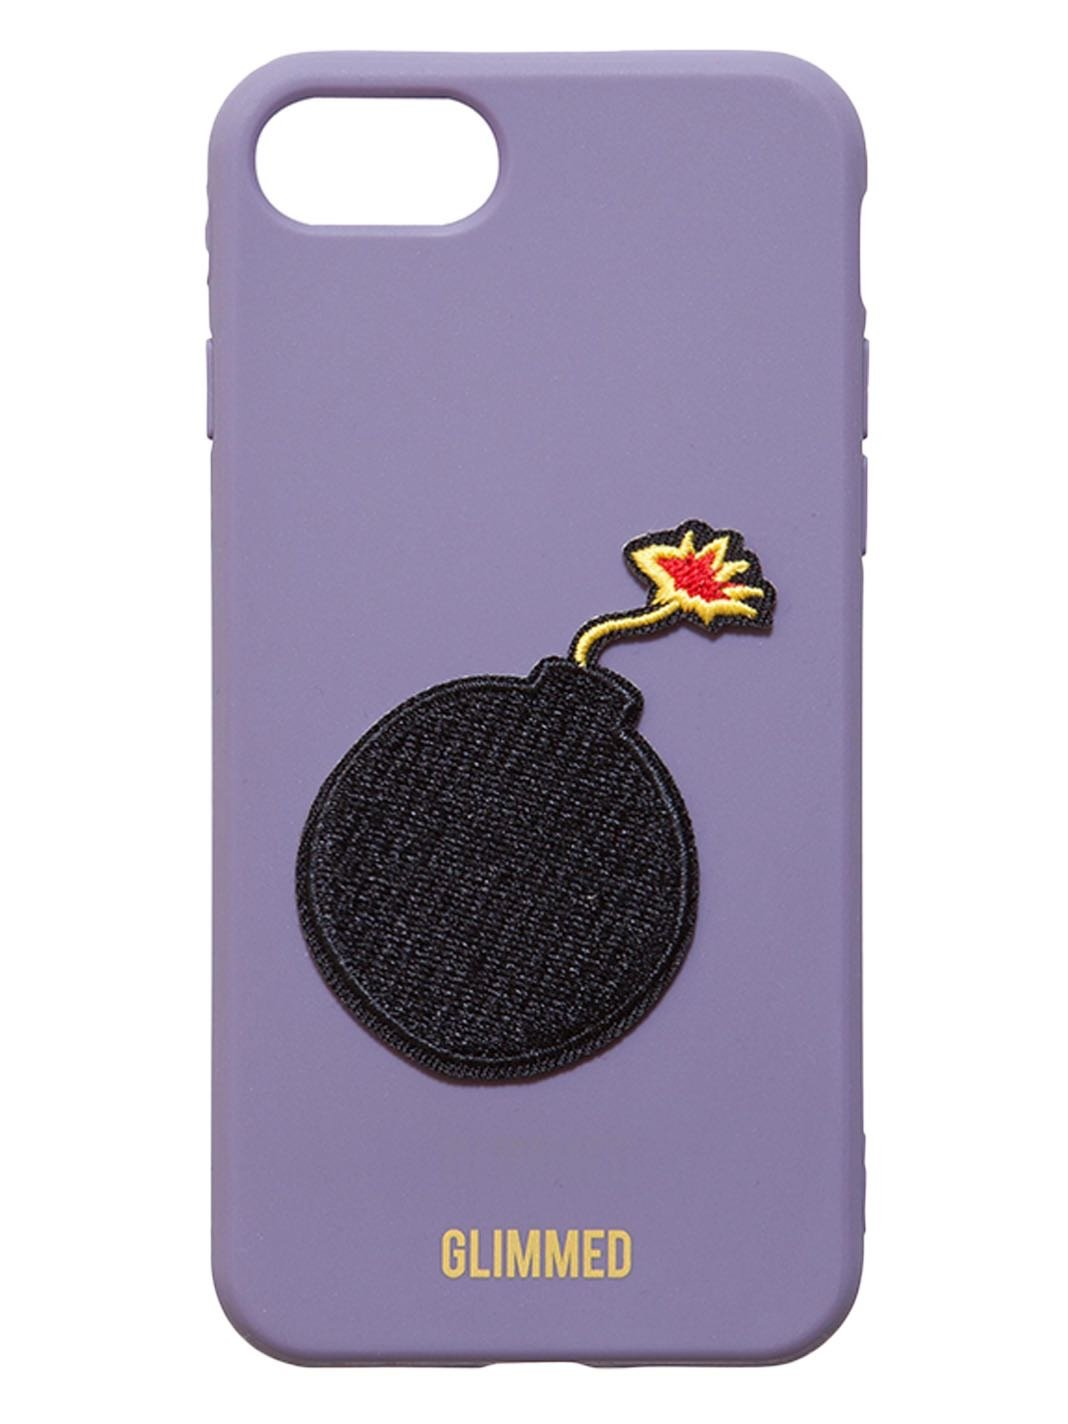 Bomb iPhone Case - The Bobby Boga